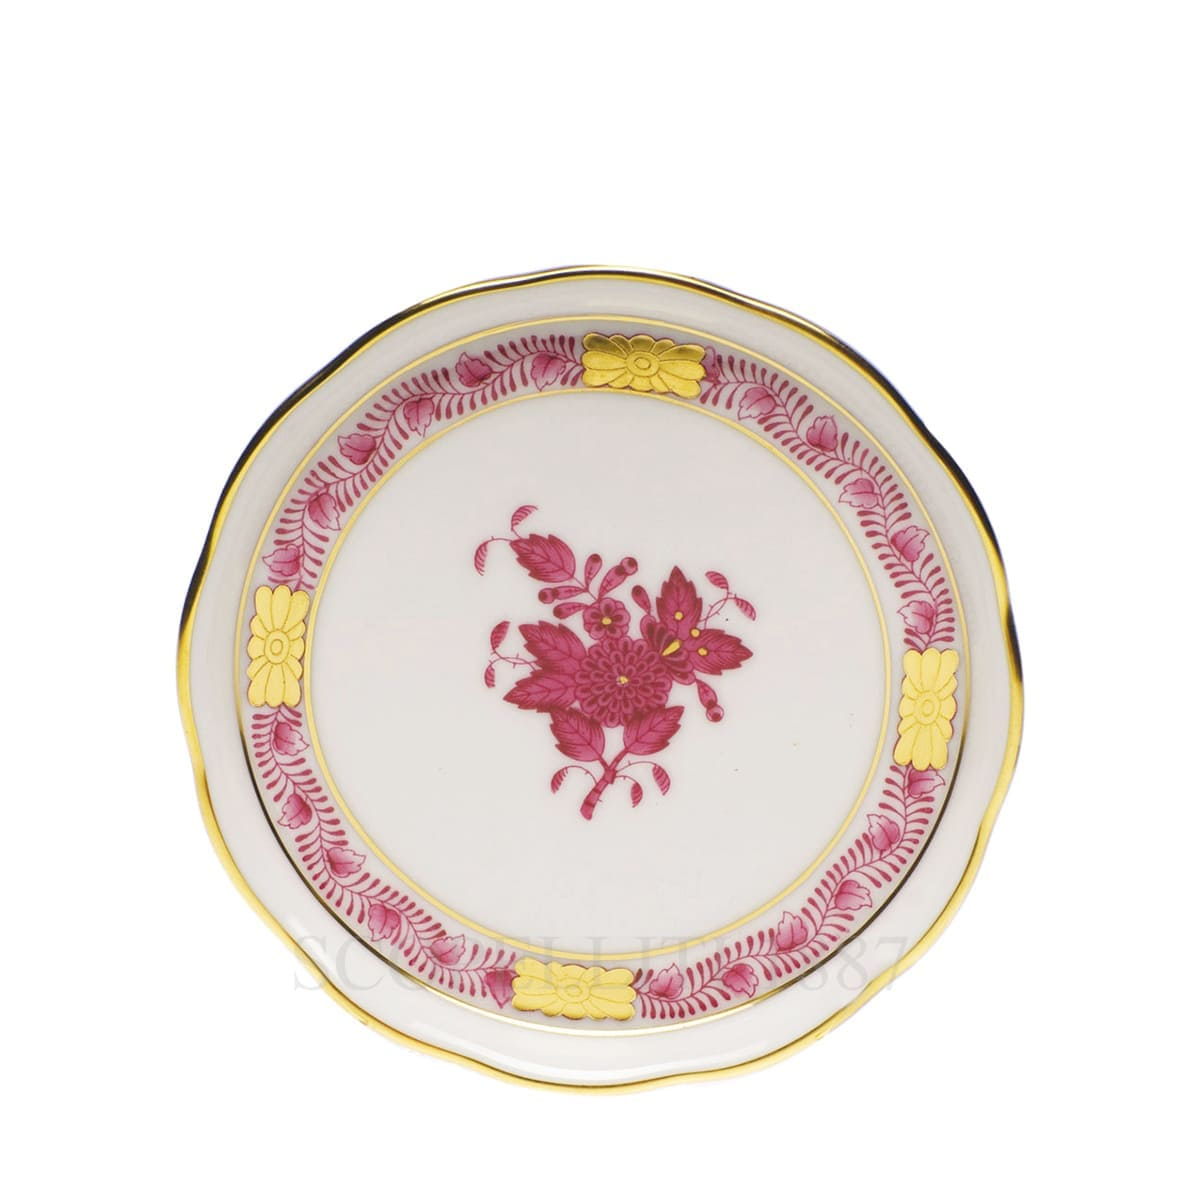 herend handpainted porcelain coaster pink